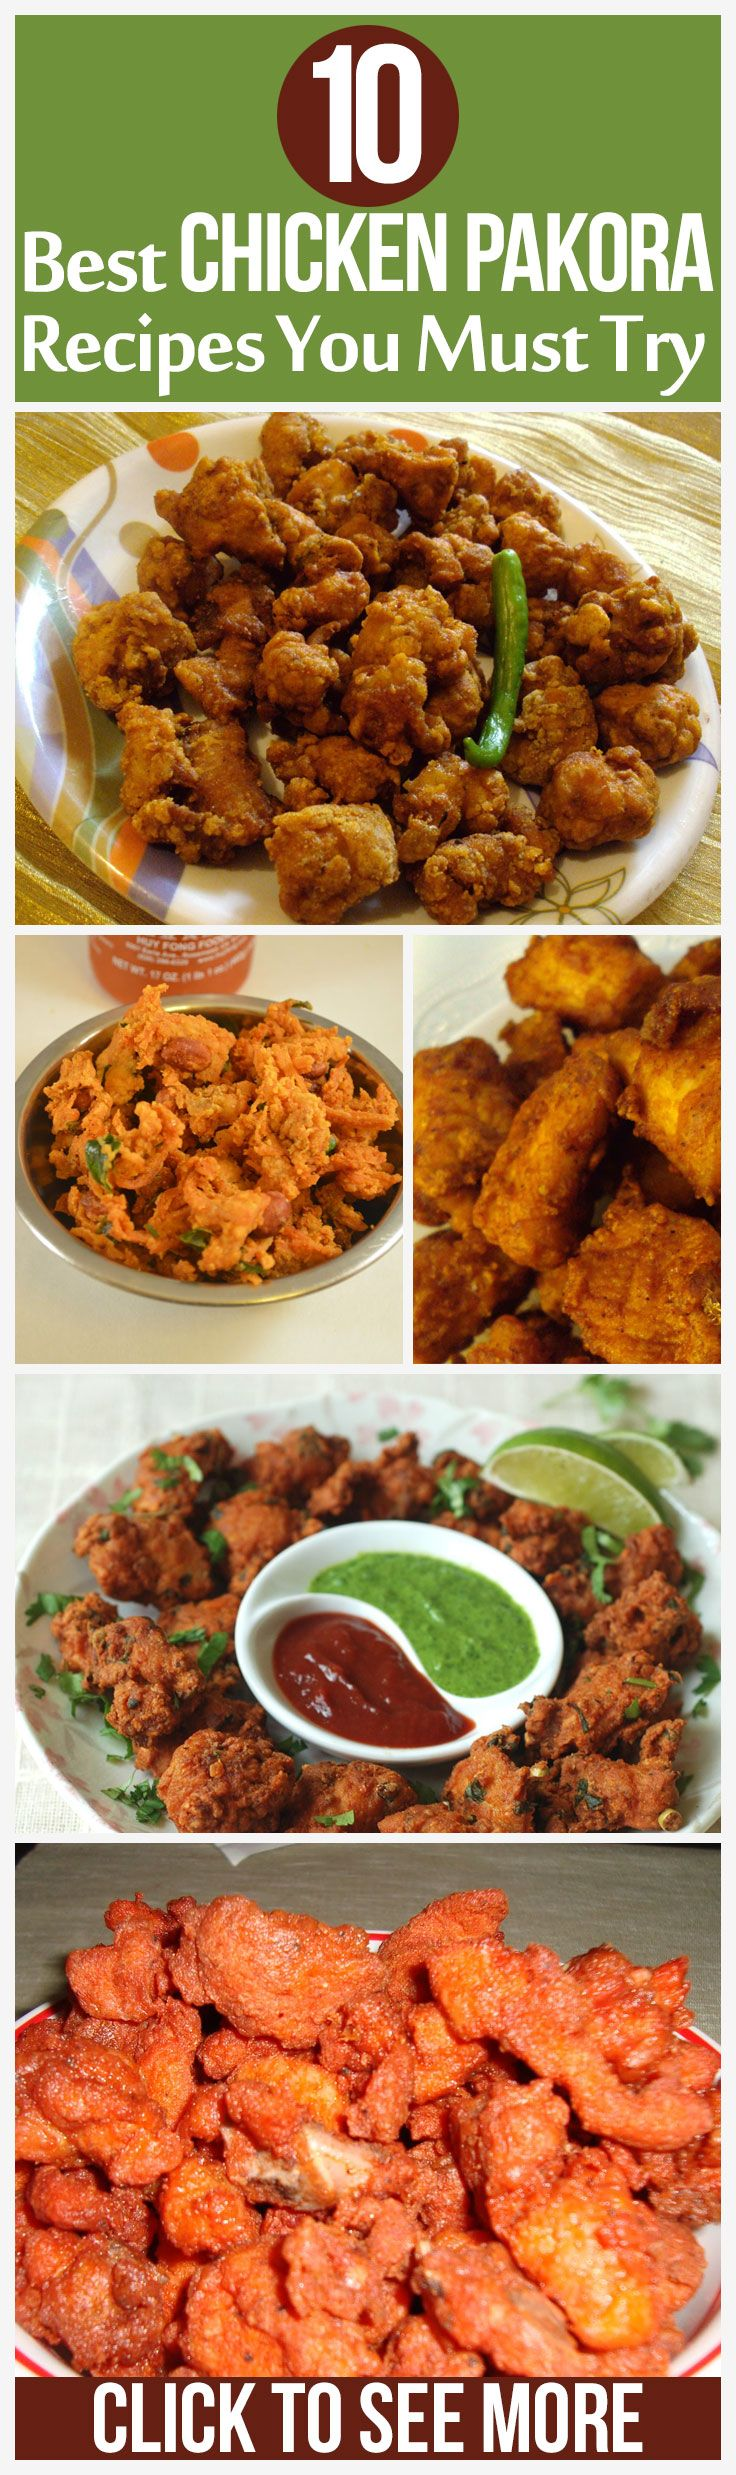 Chicken can be used to make a lot of side and main dishes in various types of cuisines. Here are some popular chicken pakora recipes that you can make at home without creating much fuss